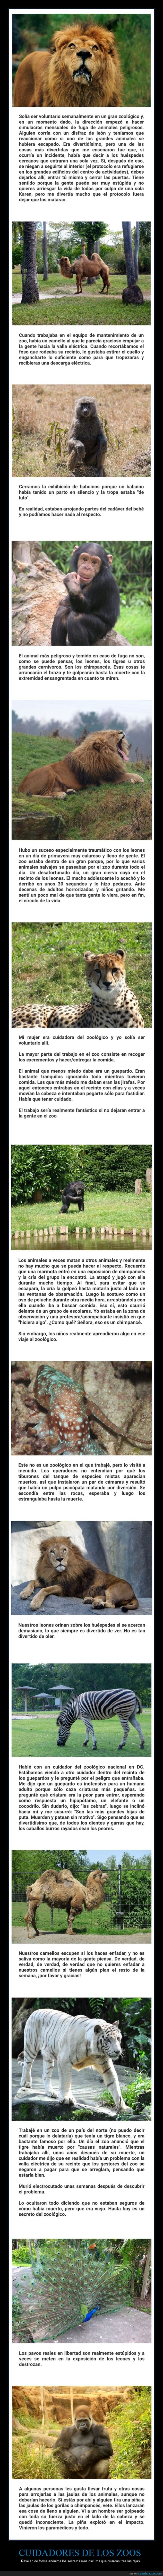 animales,cuidadores,secretos,zoos